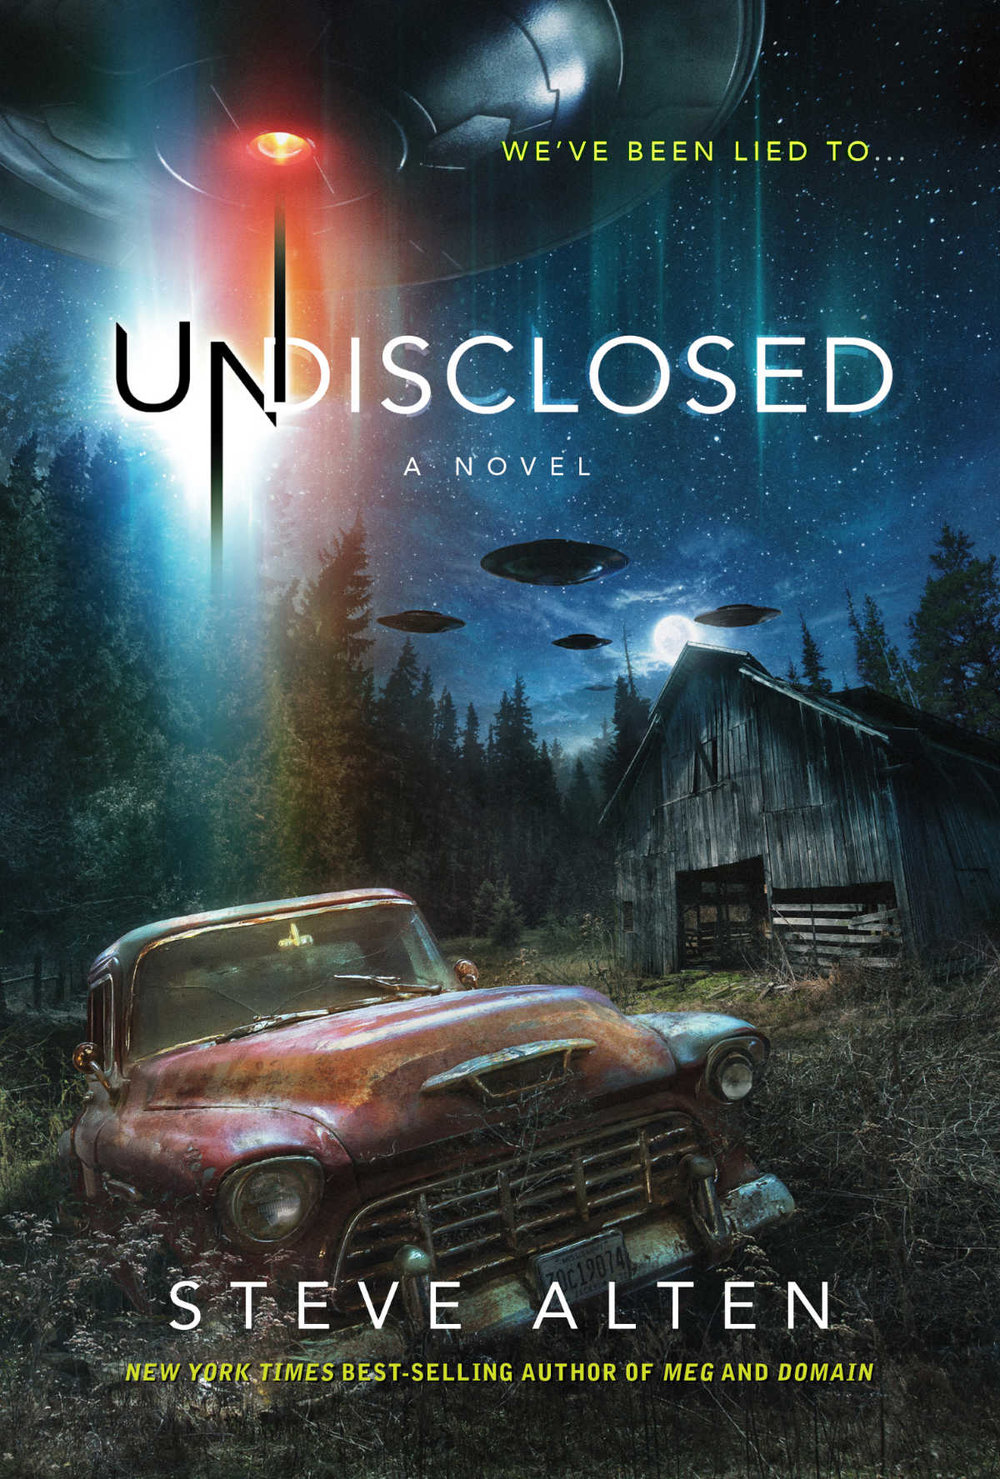 UNDISCLOSED comes out June 6, 2017